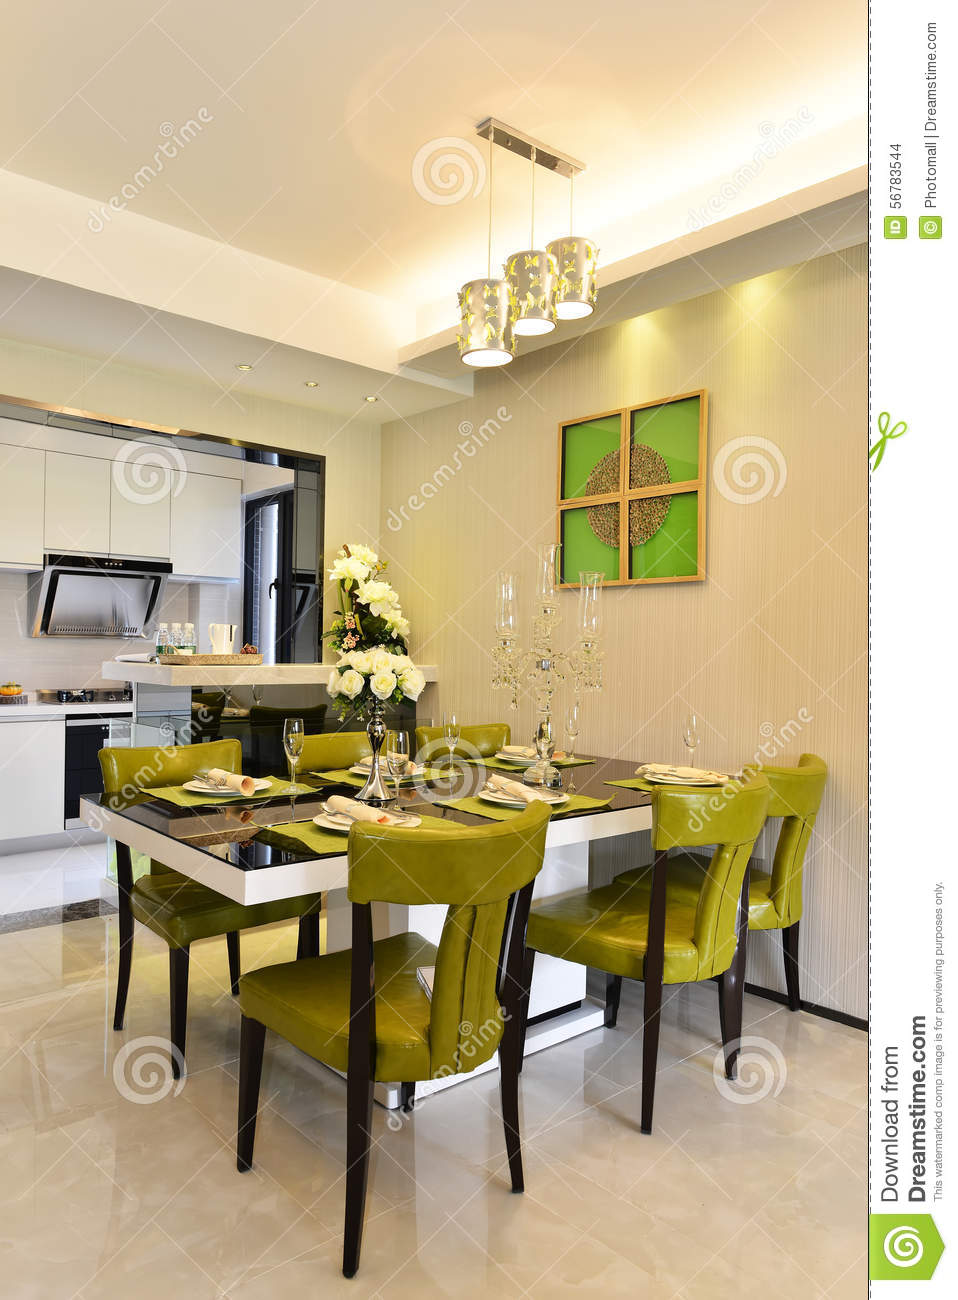 modern dining area with kitchen royalty free stock image 14466700. Black Bedroom Furniture Sets. Home Design Ideas